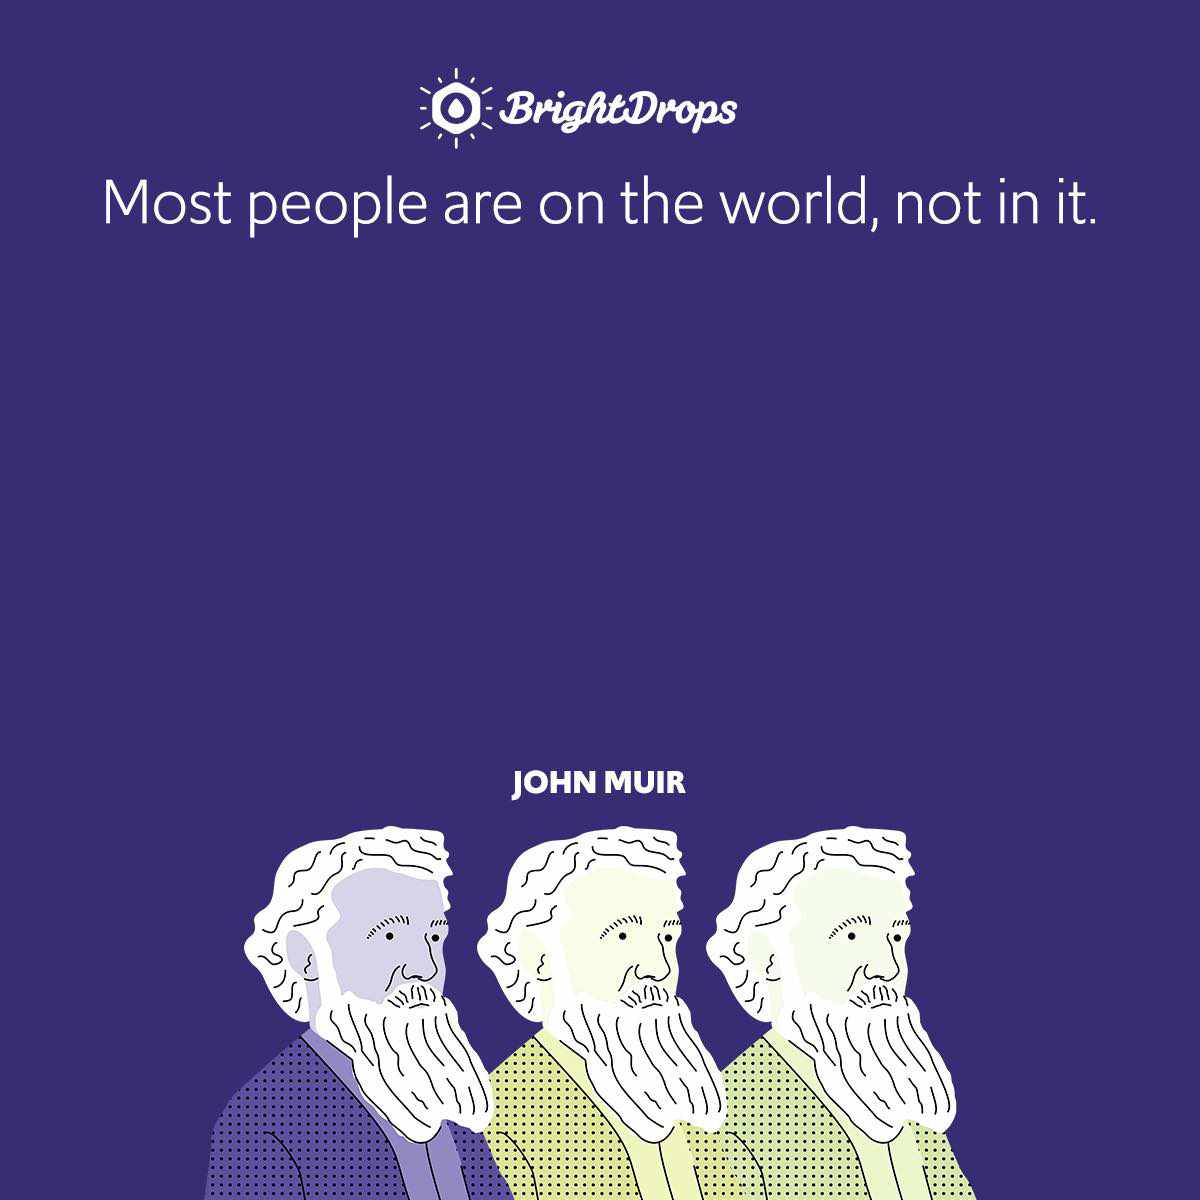 Most people are on the world, not in it.